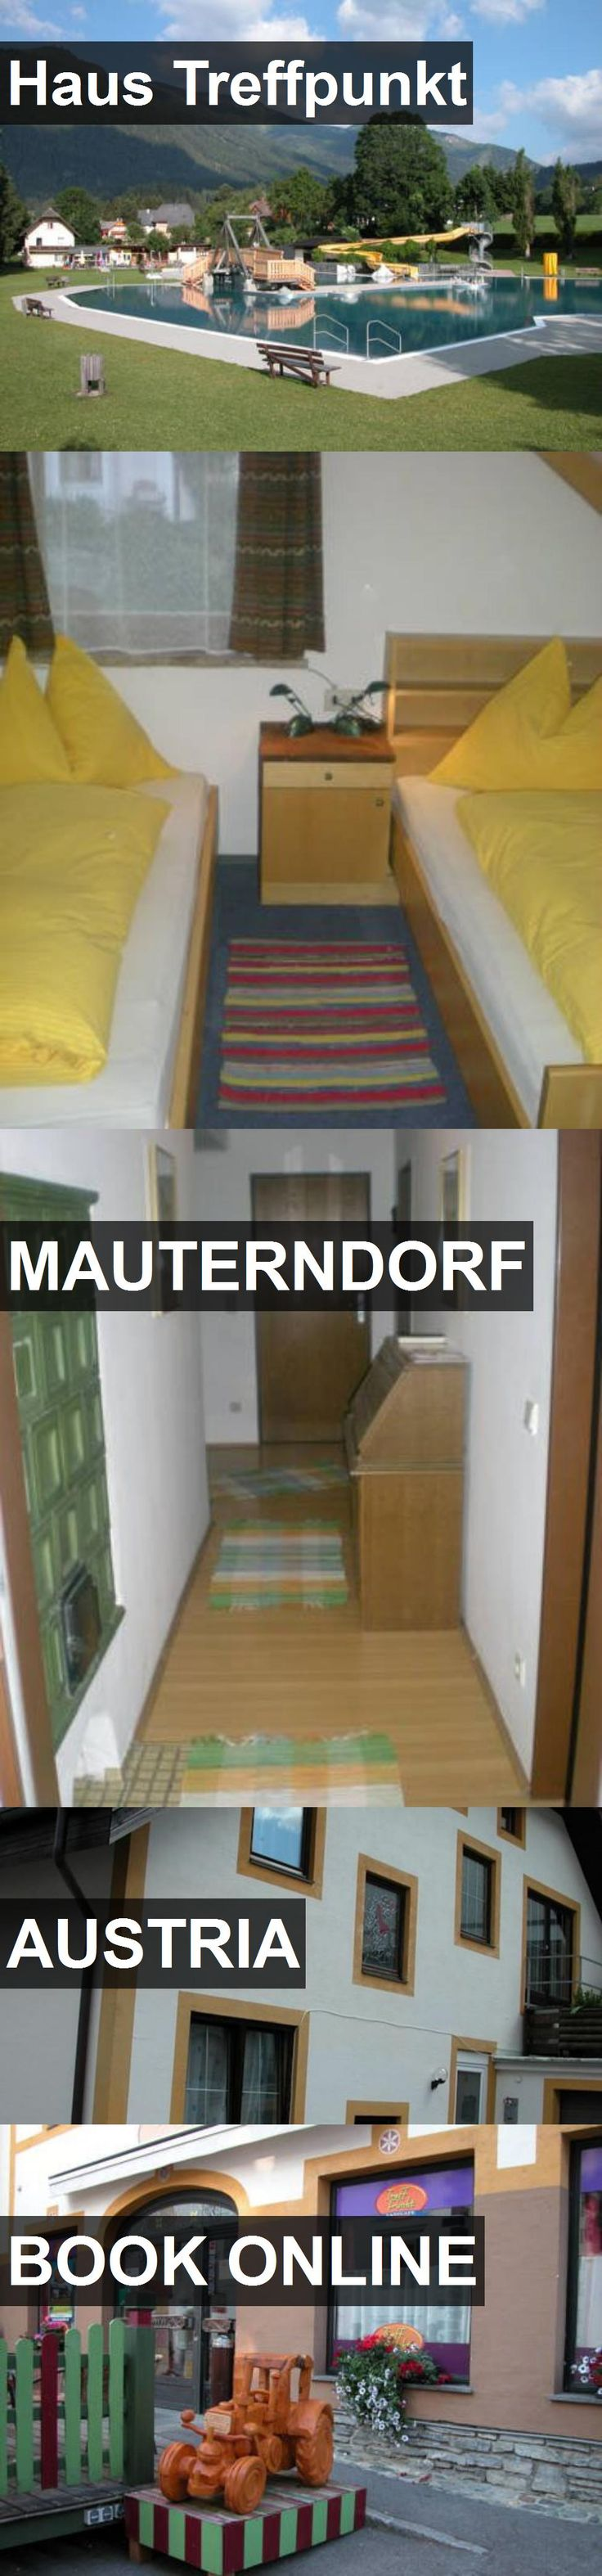 Hotel Haus Treffpunkt in Mauterndorf, Austria. For more information, photos, reviews and best prices please follow the link. #Austria #Mauterndorf #travel #vacation #hotel